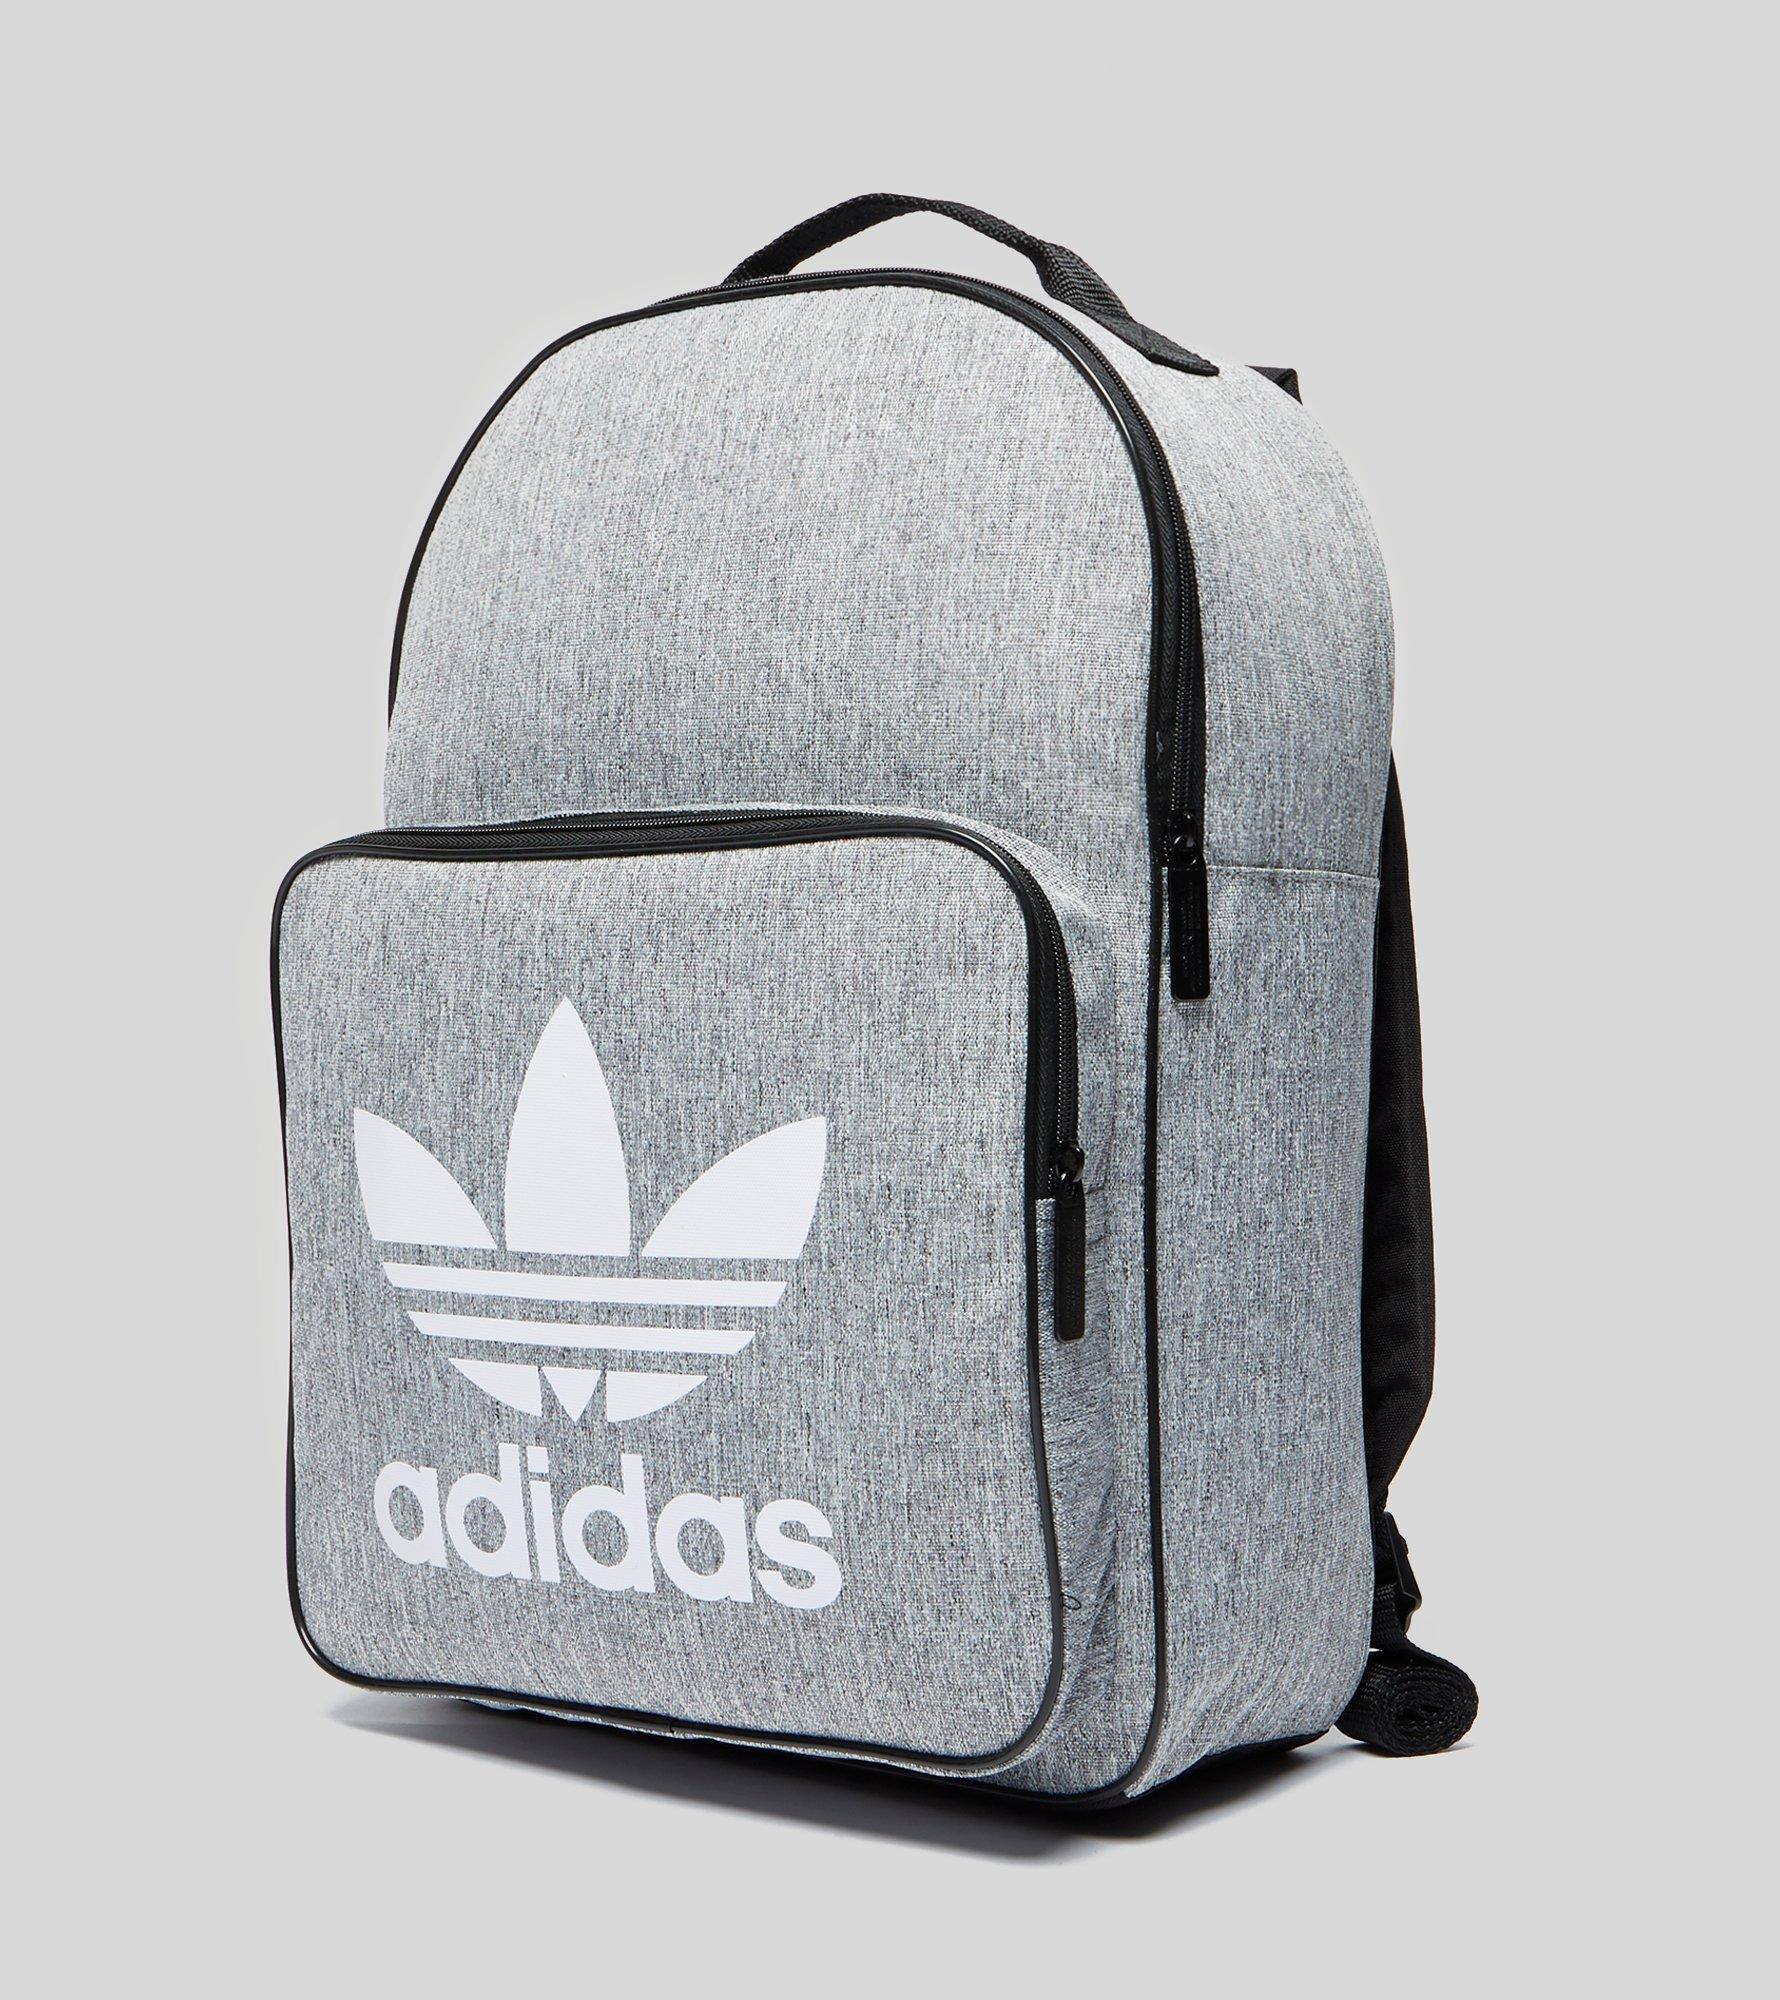 c3a46fc20 adidas Originals Classic Trefoil Backpack in Gray for Men - Lyst